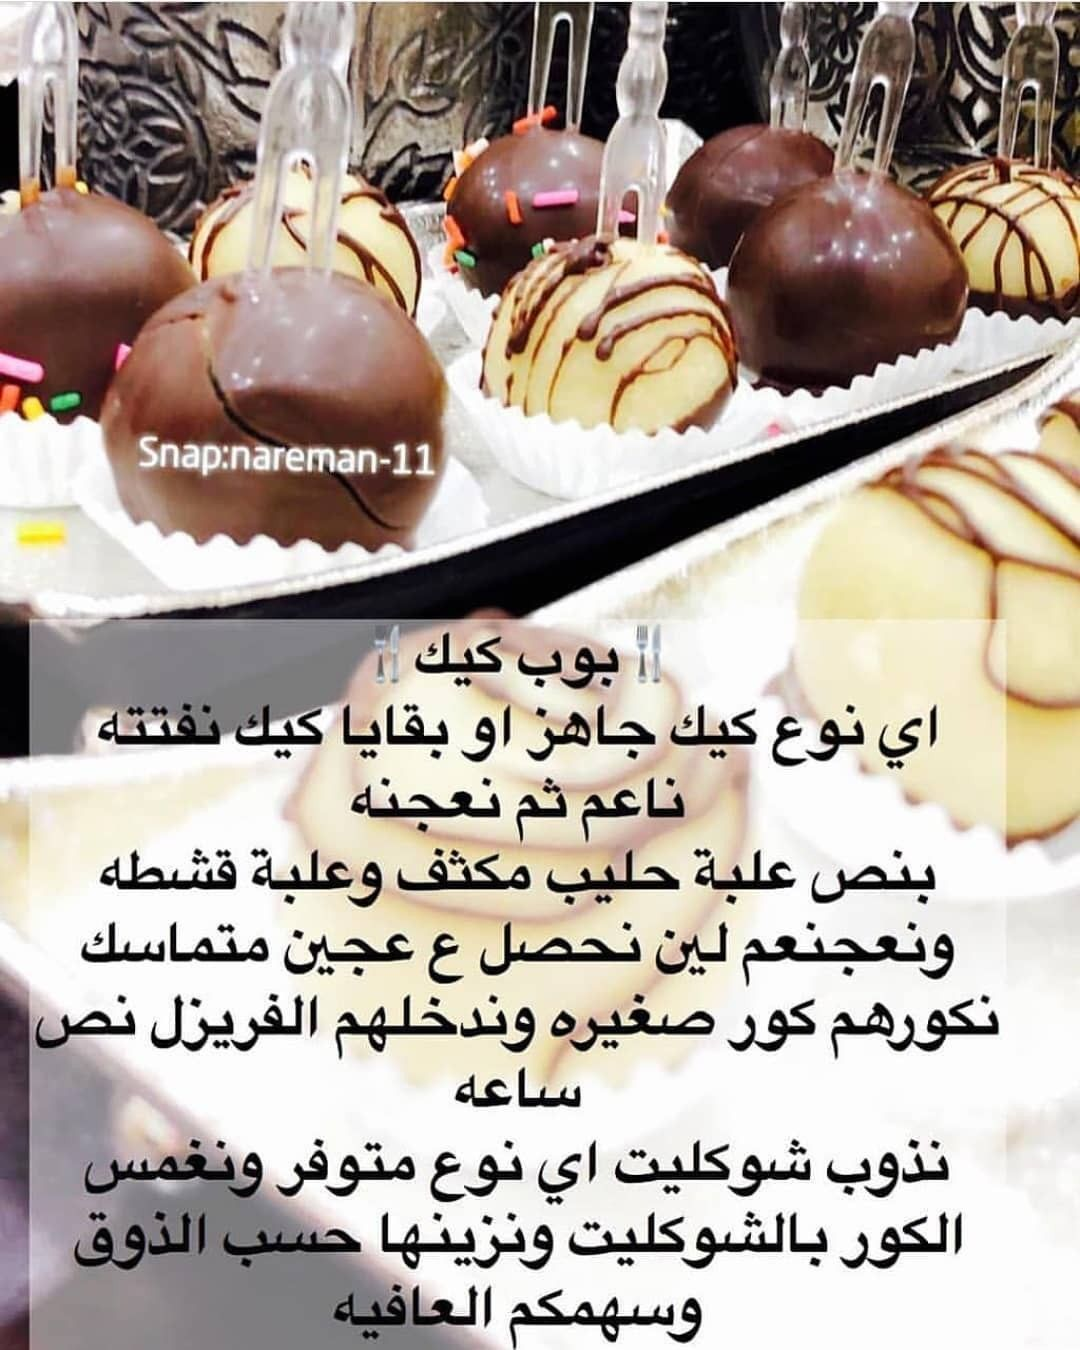 Pin By Nane On Cake In 2019 Sweets Recipes Arabic Food Cooking Sweets Recipes Arabic Food Food Drinks Dessert